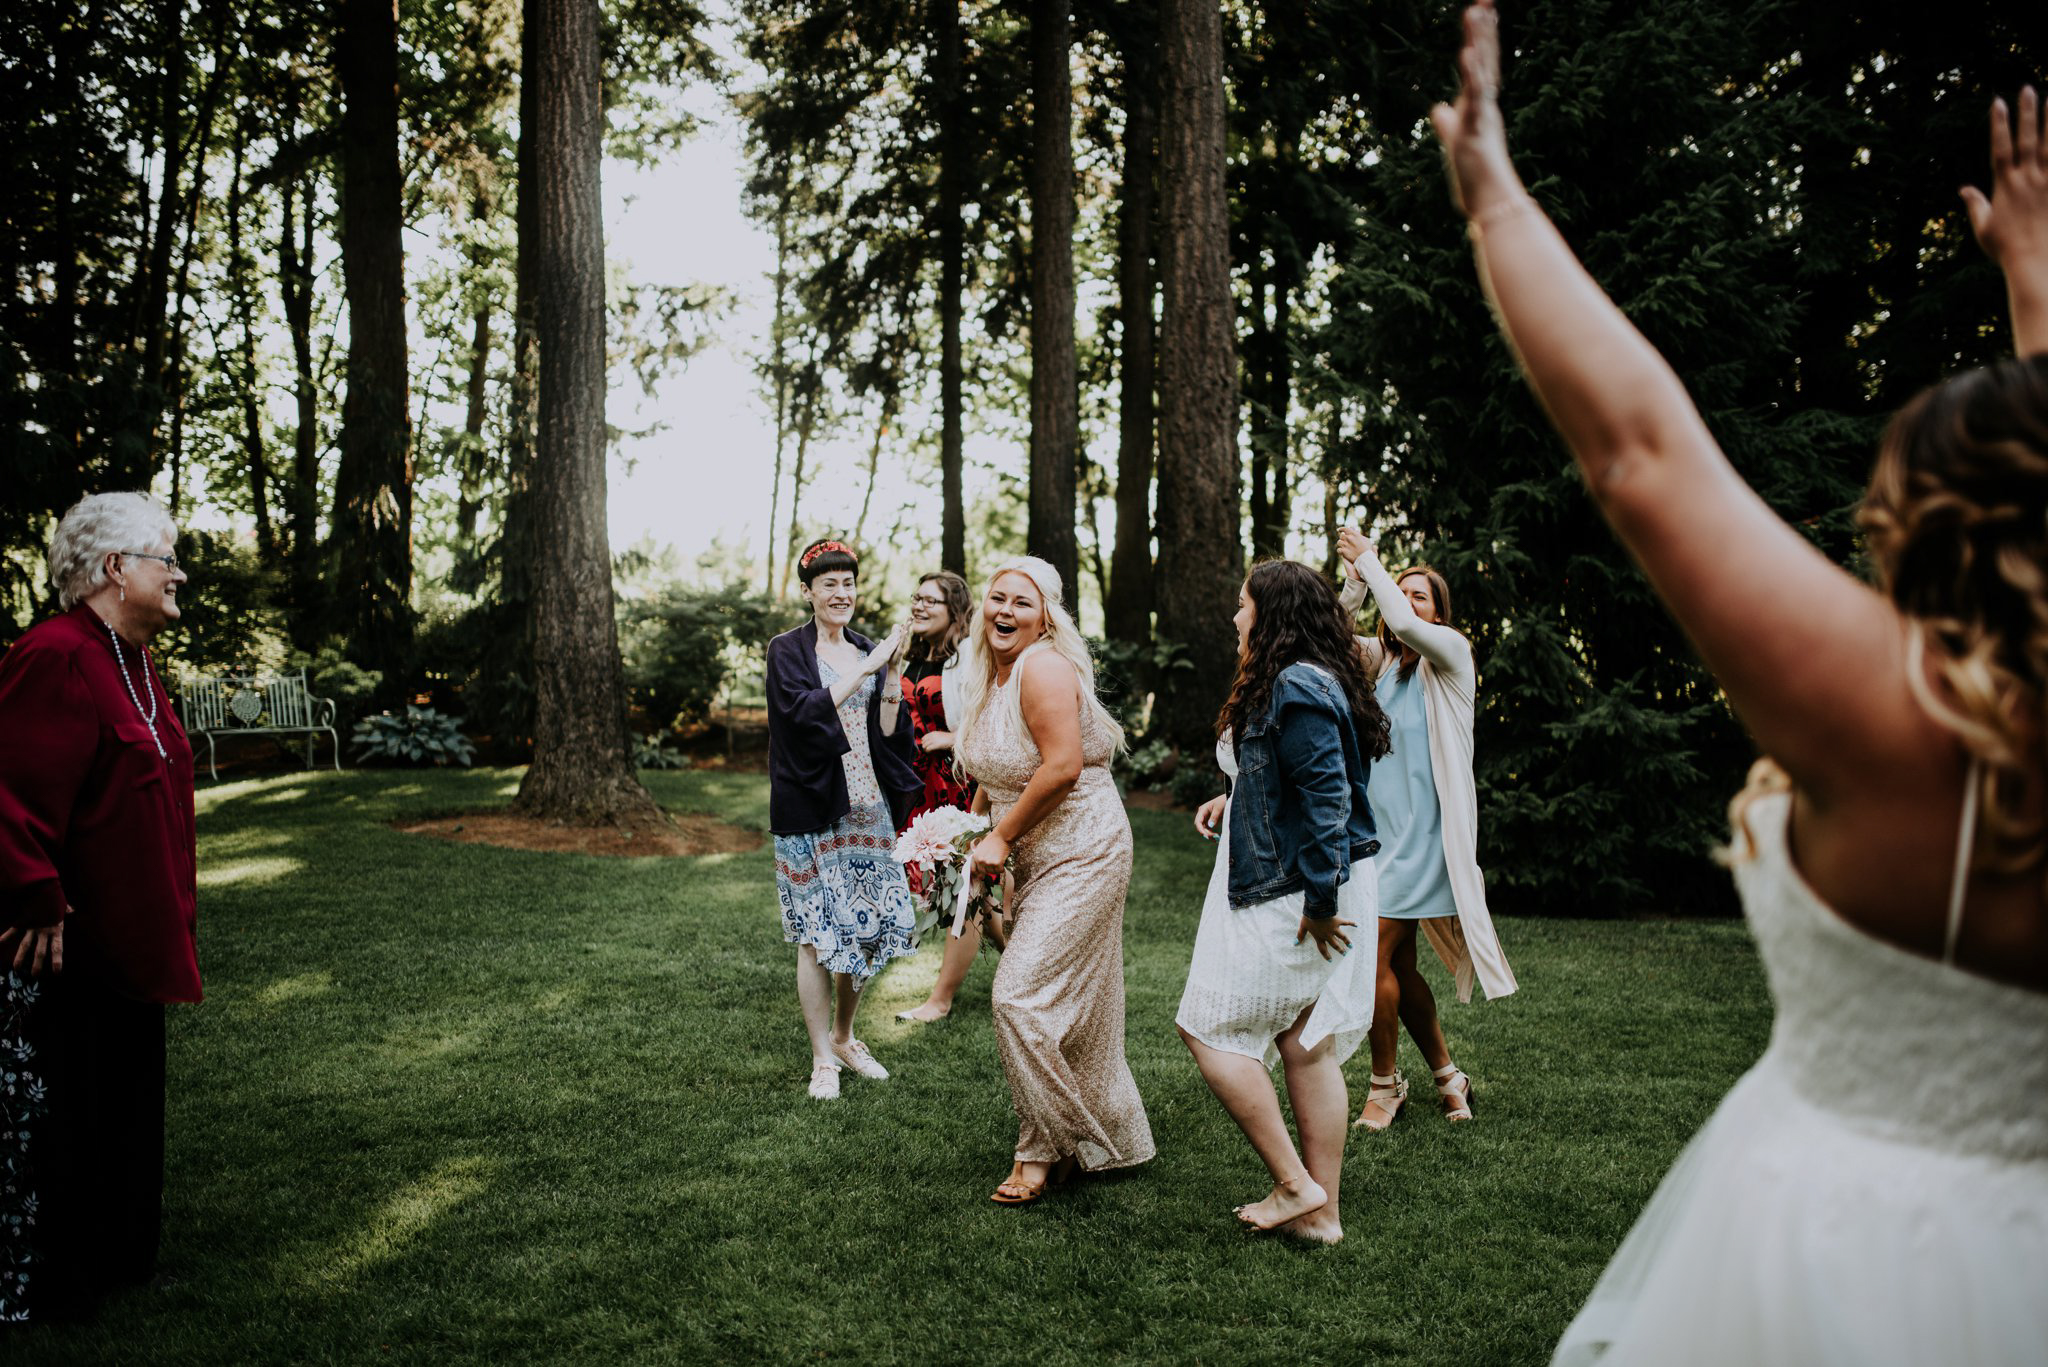 evergreen-gardens-bellingham-wedding-seattle-photographer-caitlyn-nikula-104.jpg